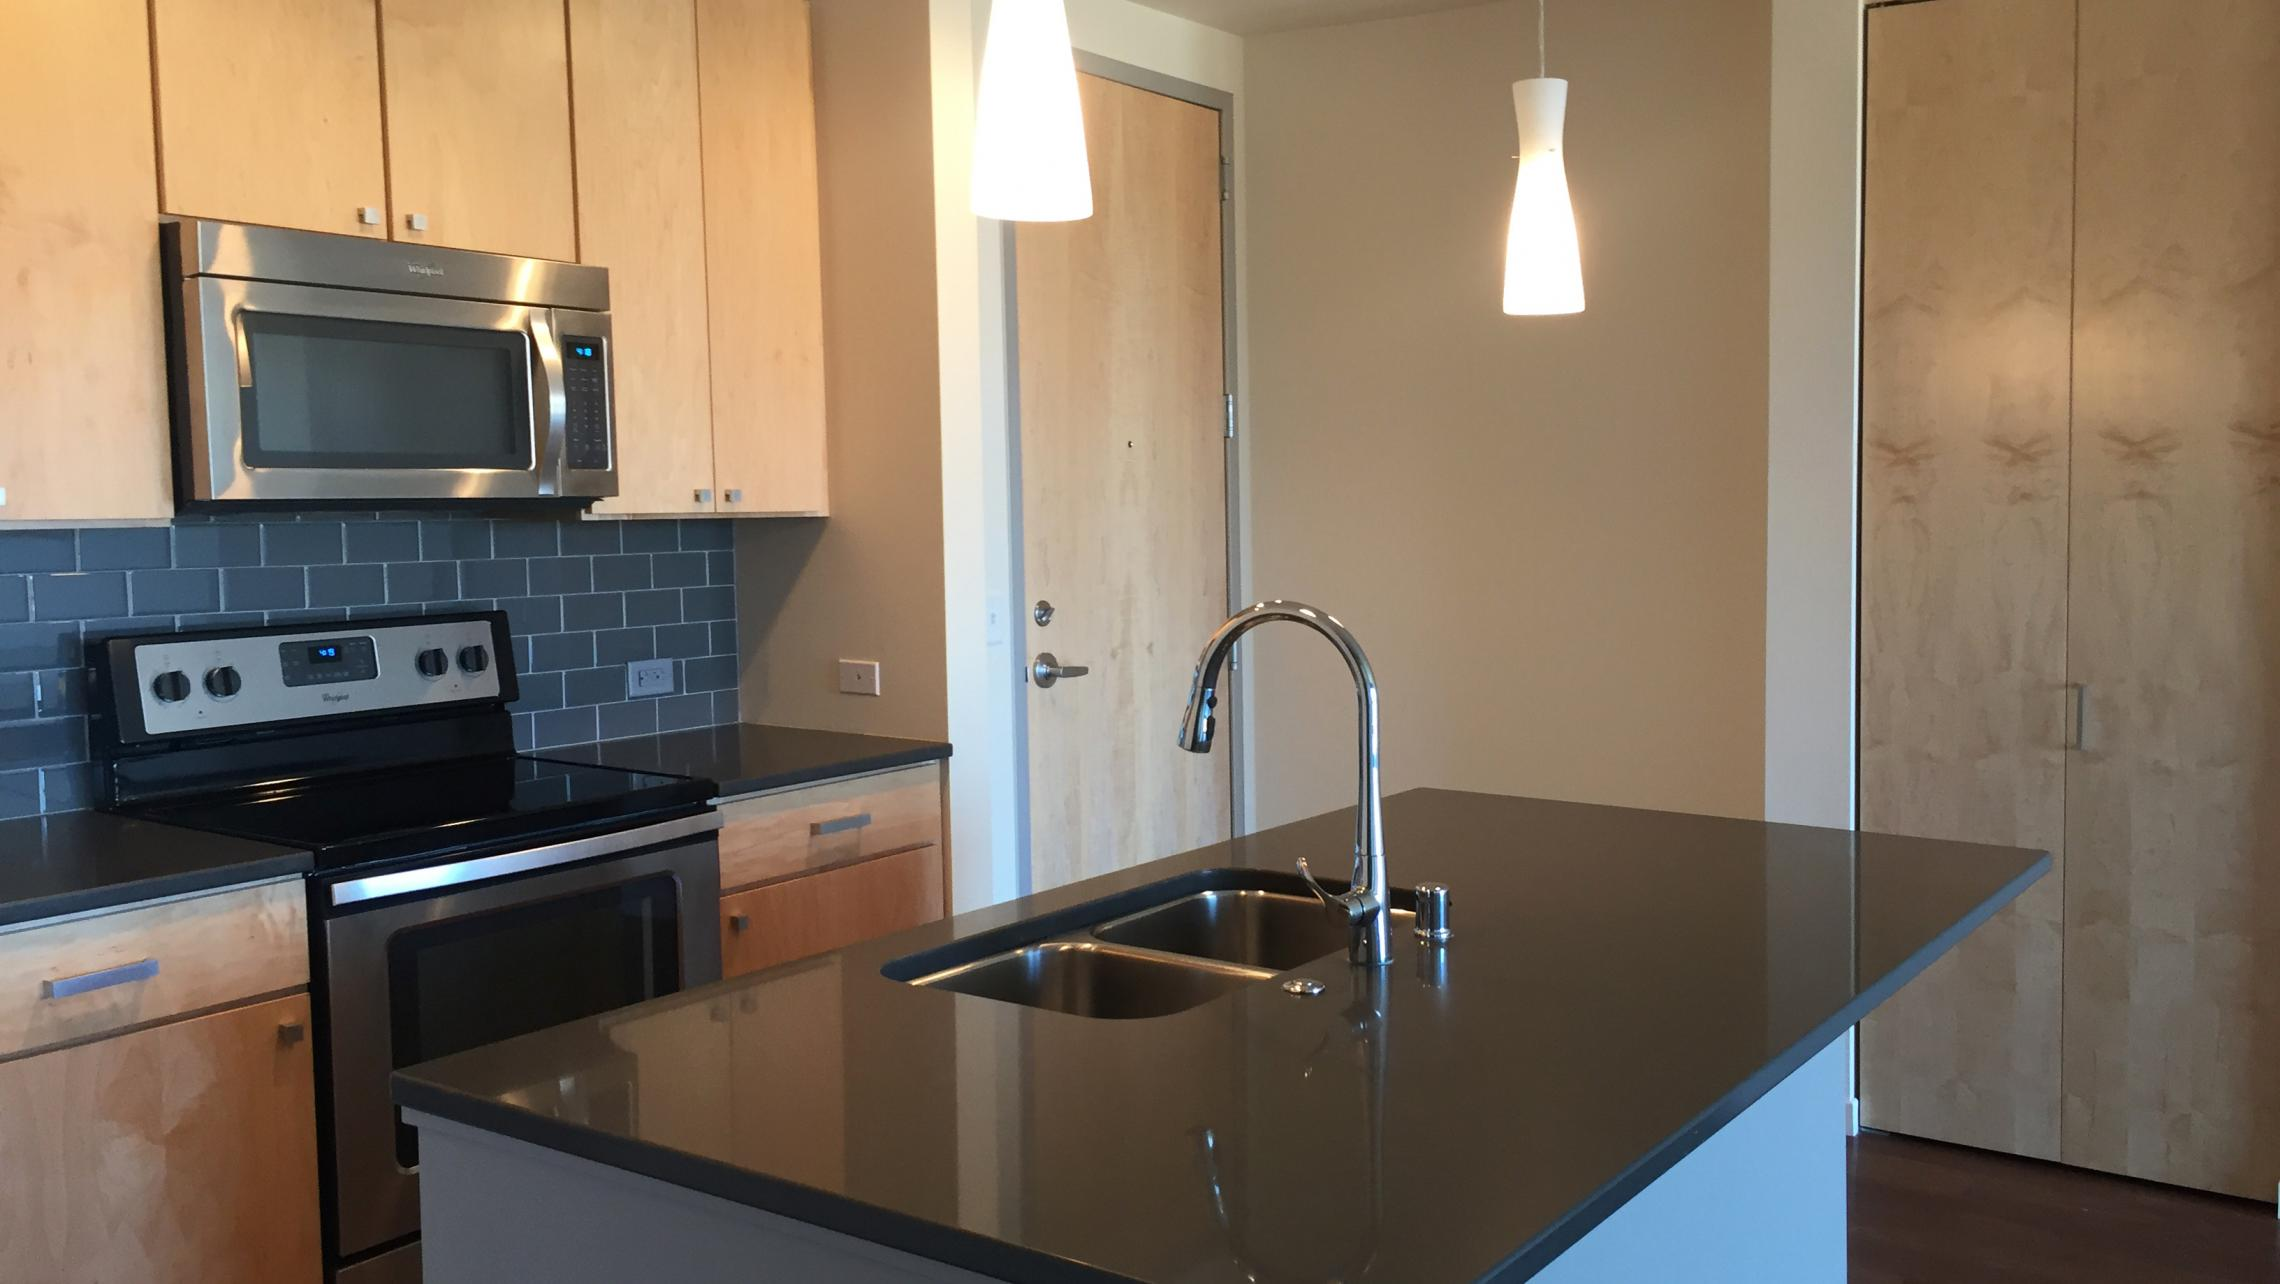 ULI Nine Line Apartment 220 - Kitchen with Stainless Steel Appliances